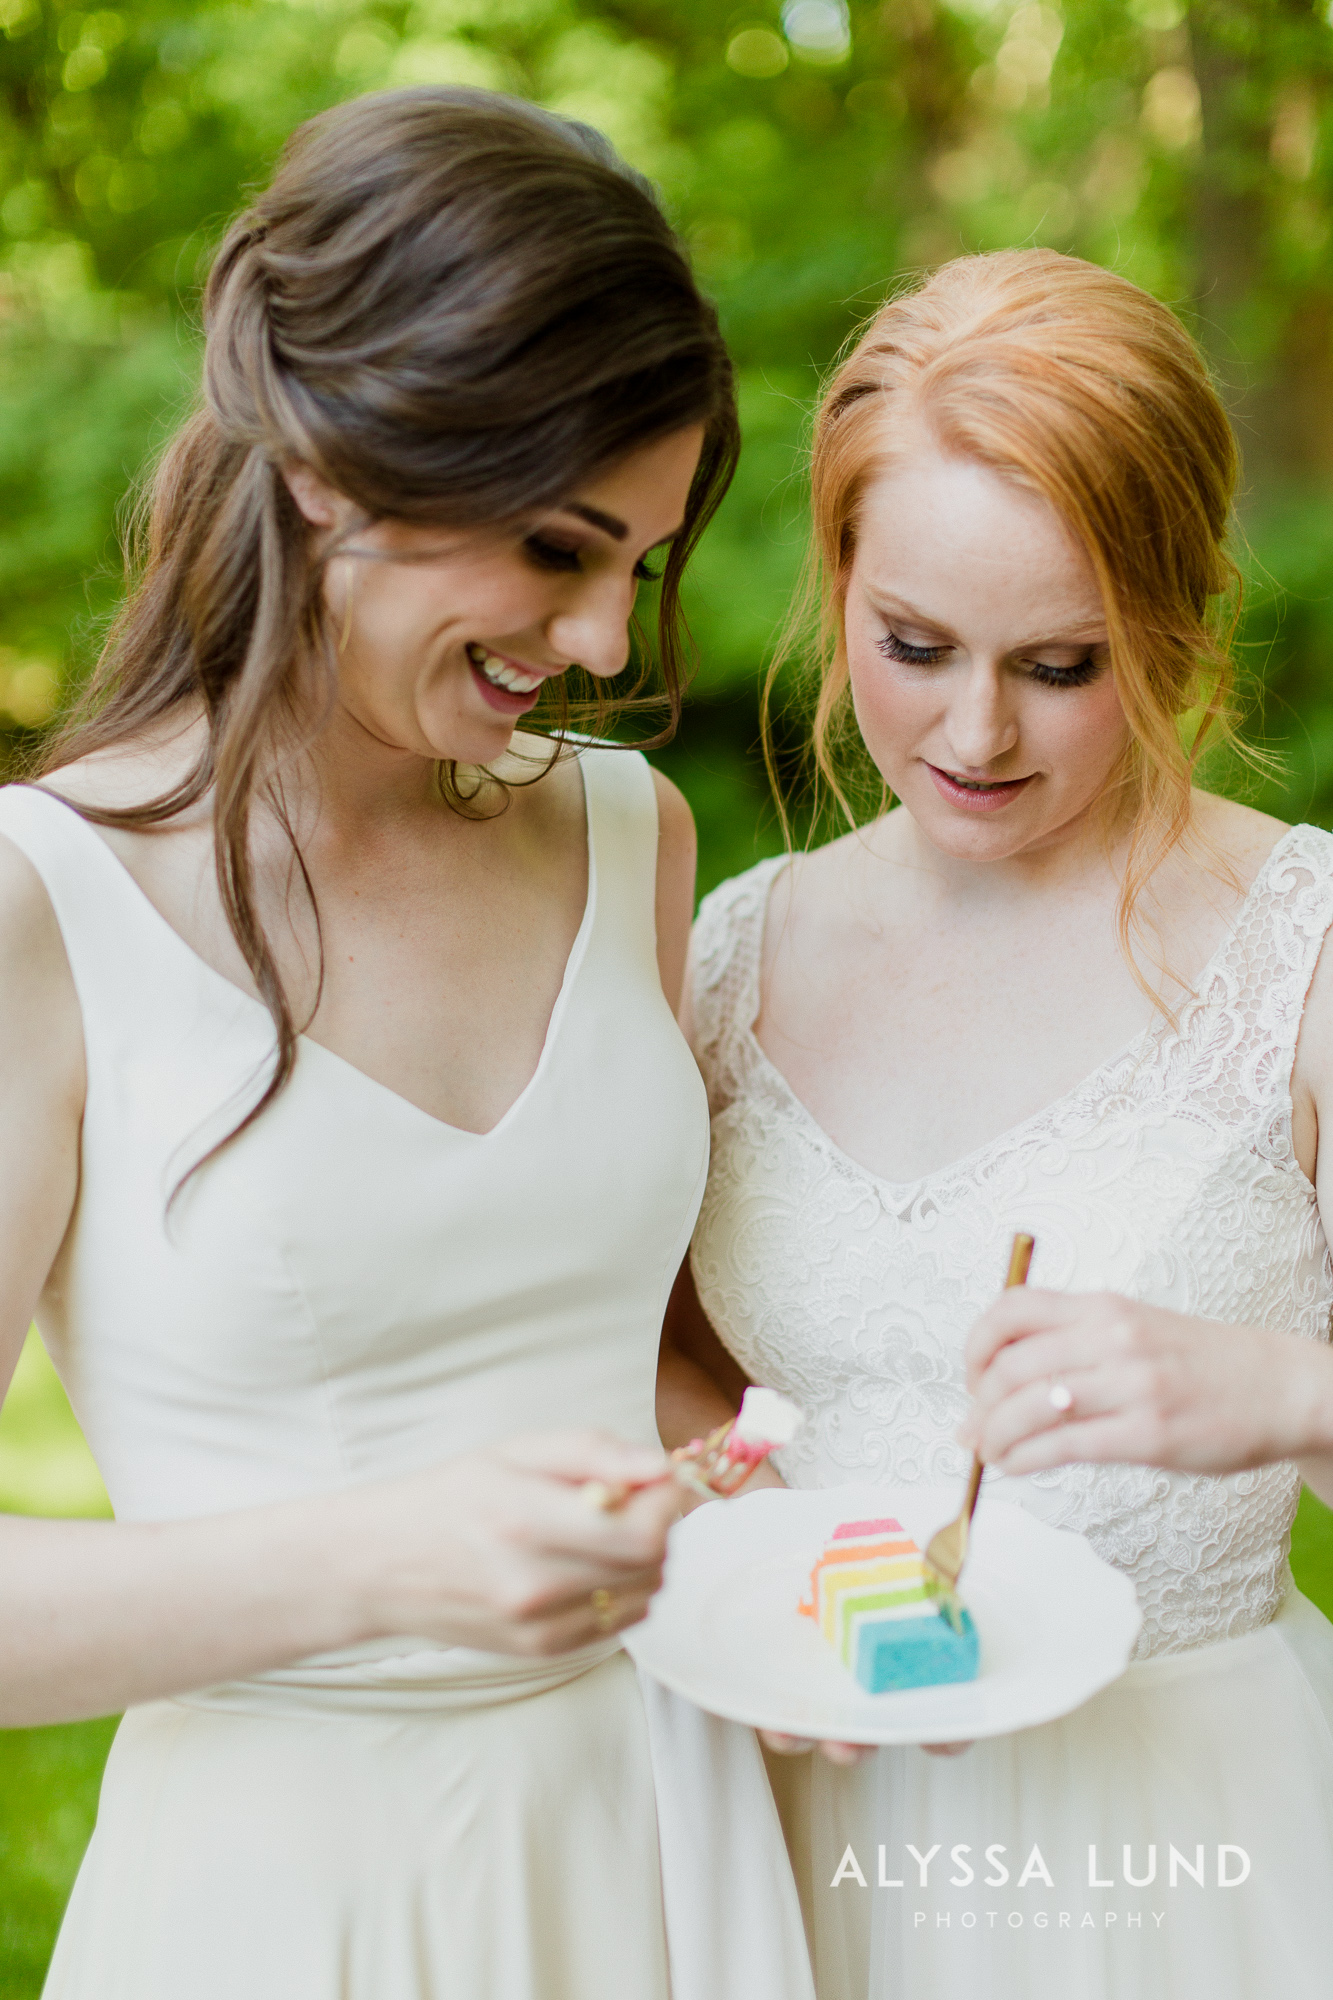 Queer wedding photography inspiration by Alyssa Lund Photography-15.jpg